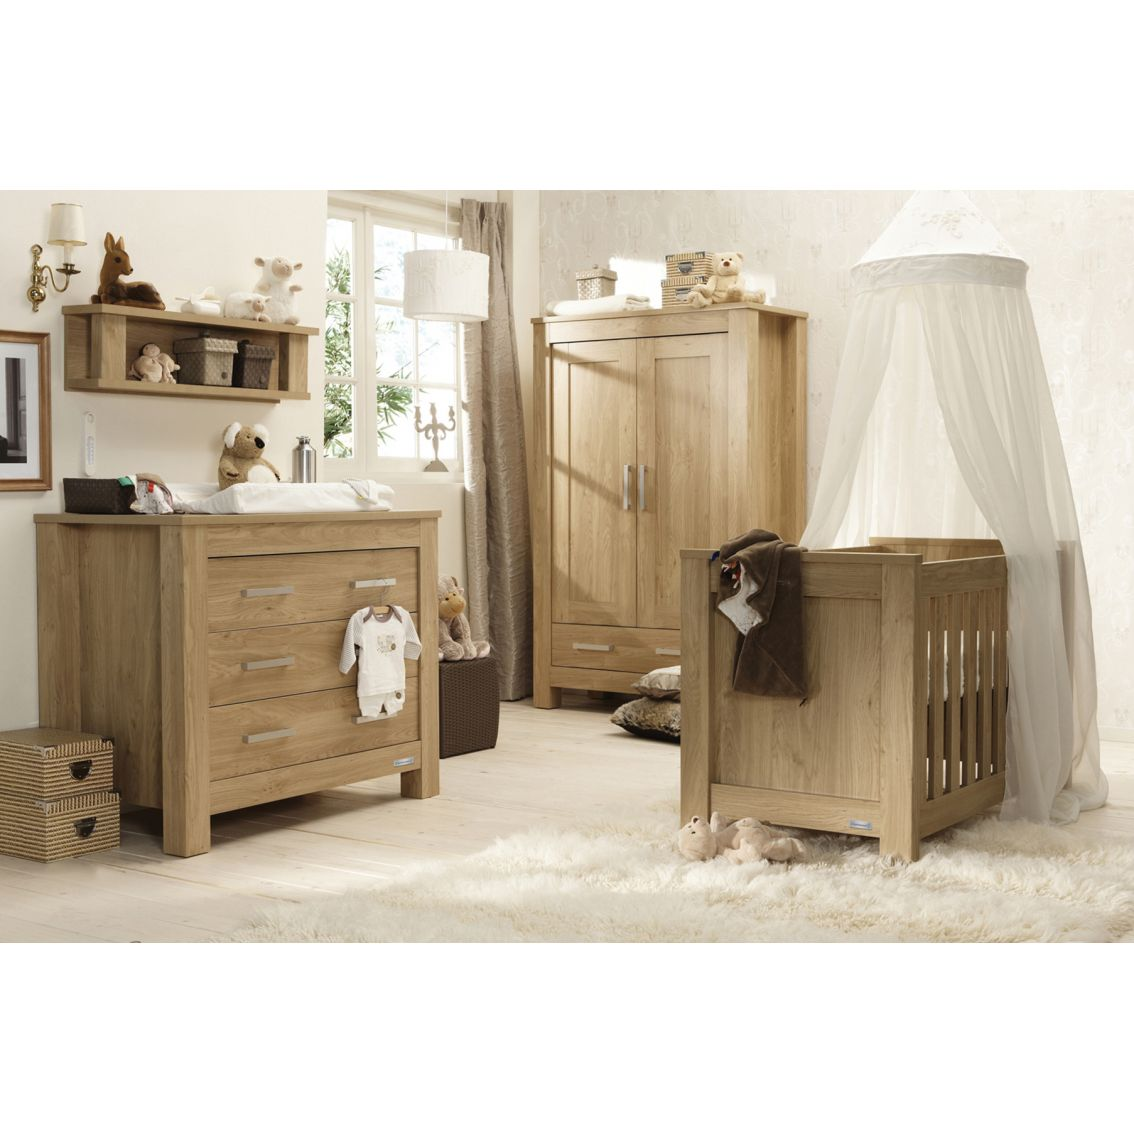 babystyle bordeaux 3 nursery furniture set 3 Piece Nursery Set id=93122